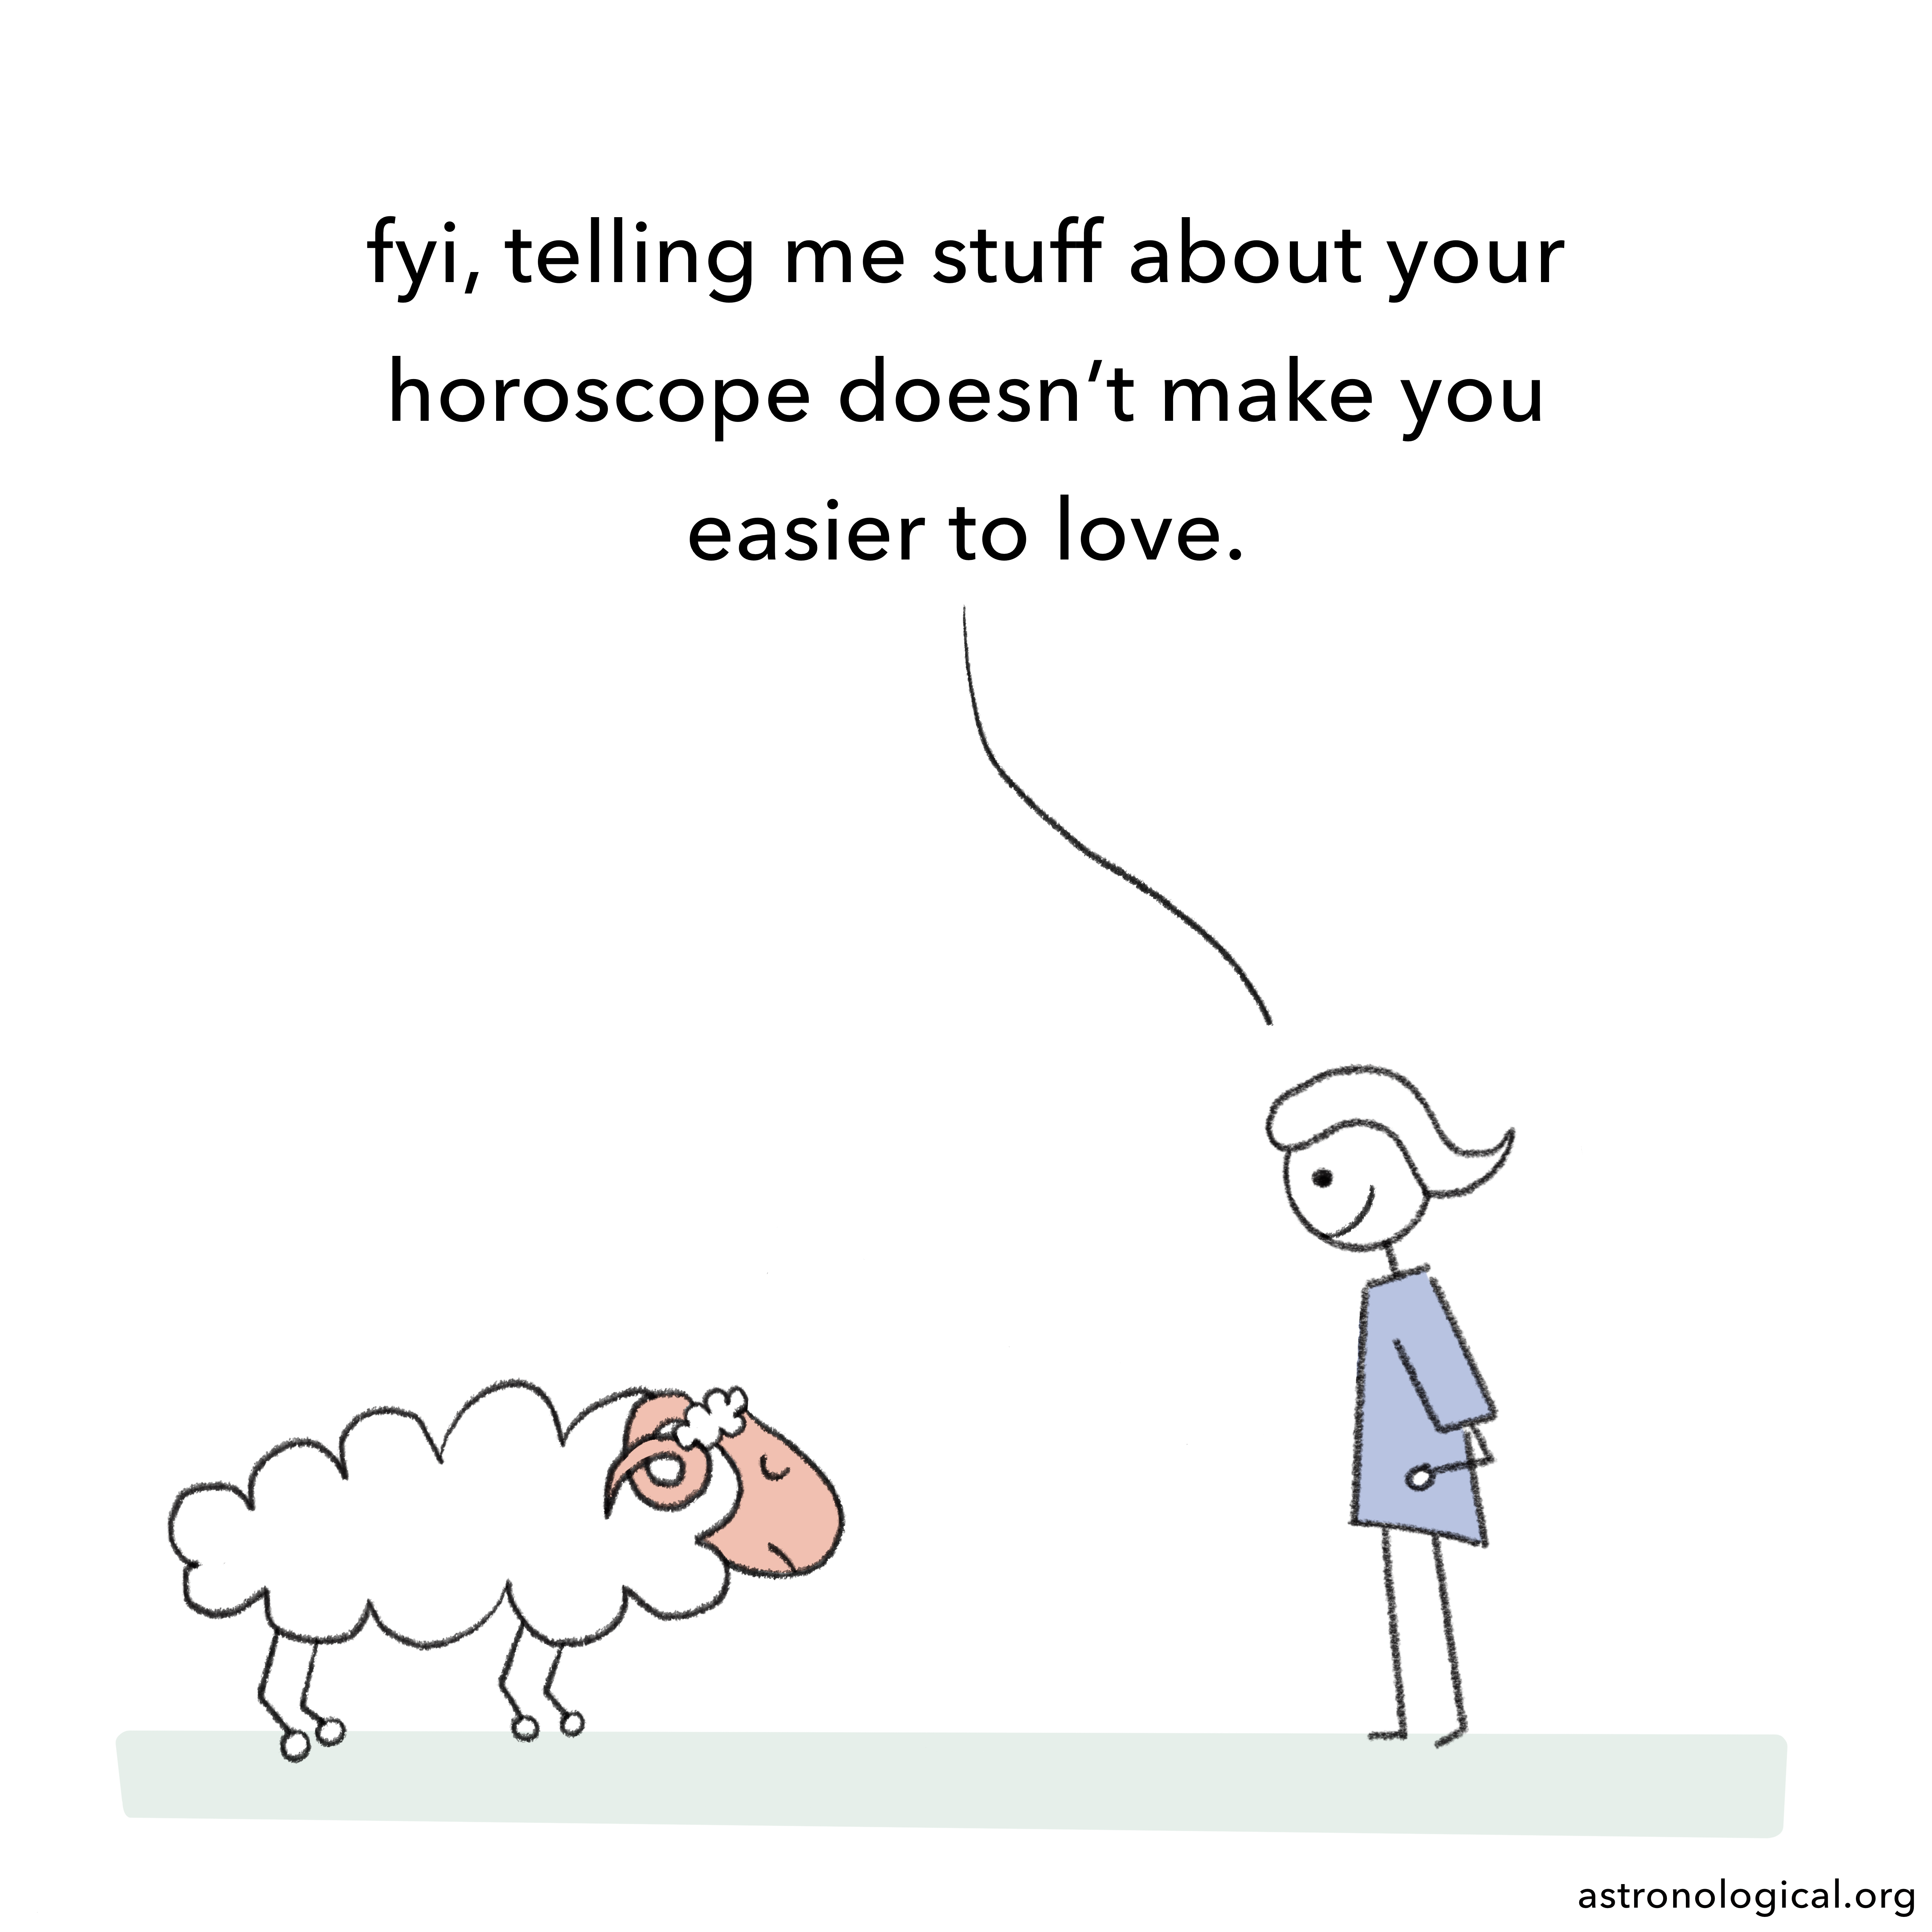 The girl adds with a smile: fyi, telling me stuff about your horoscope doesn't make you easier to love. The ram hangs its head and looks a bit ashamed.